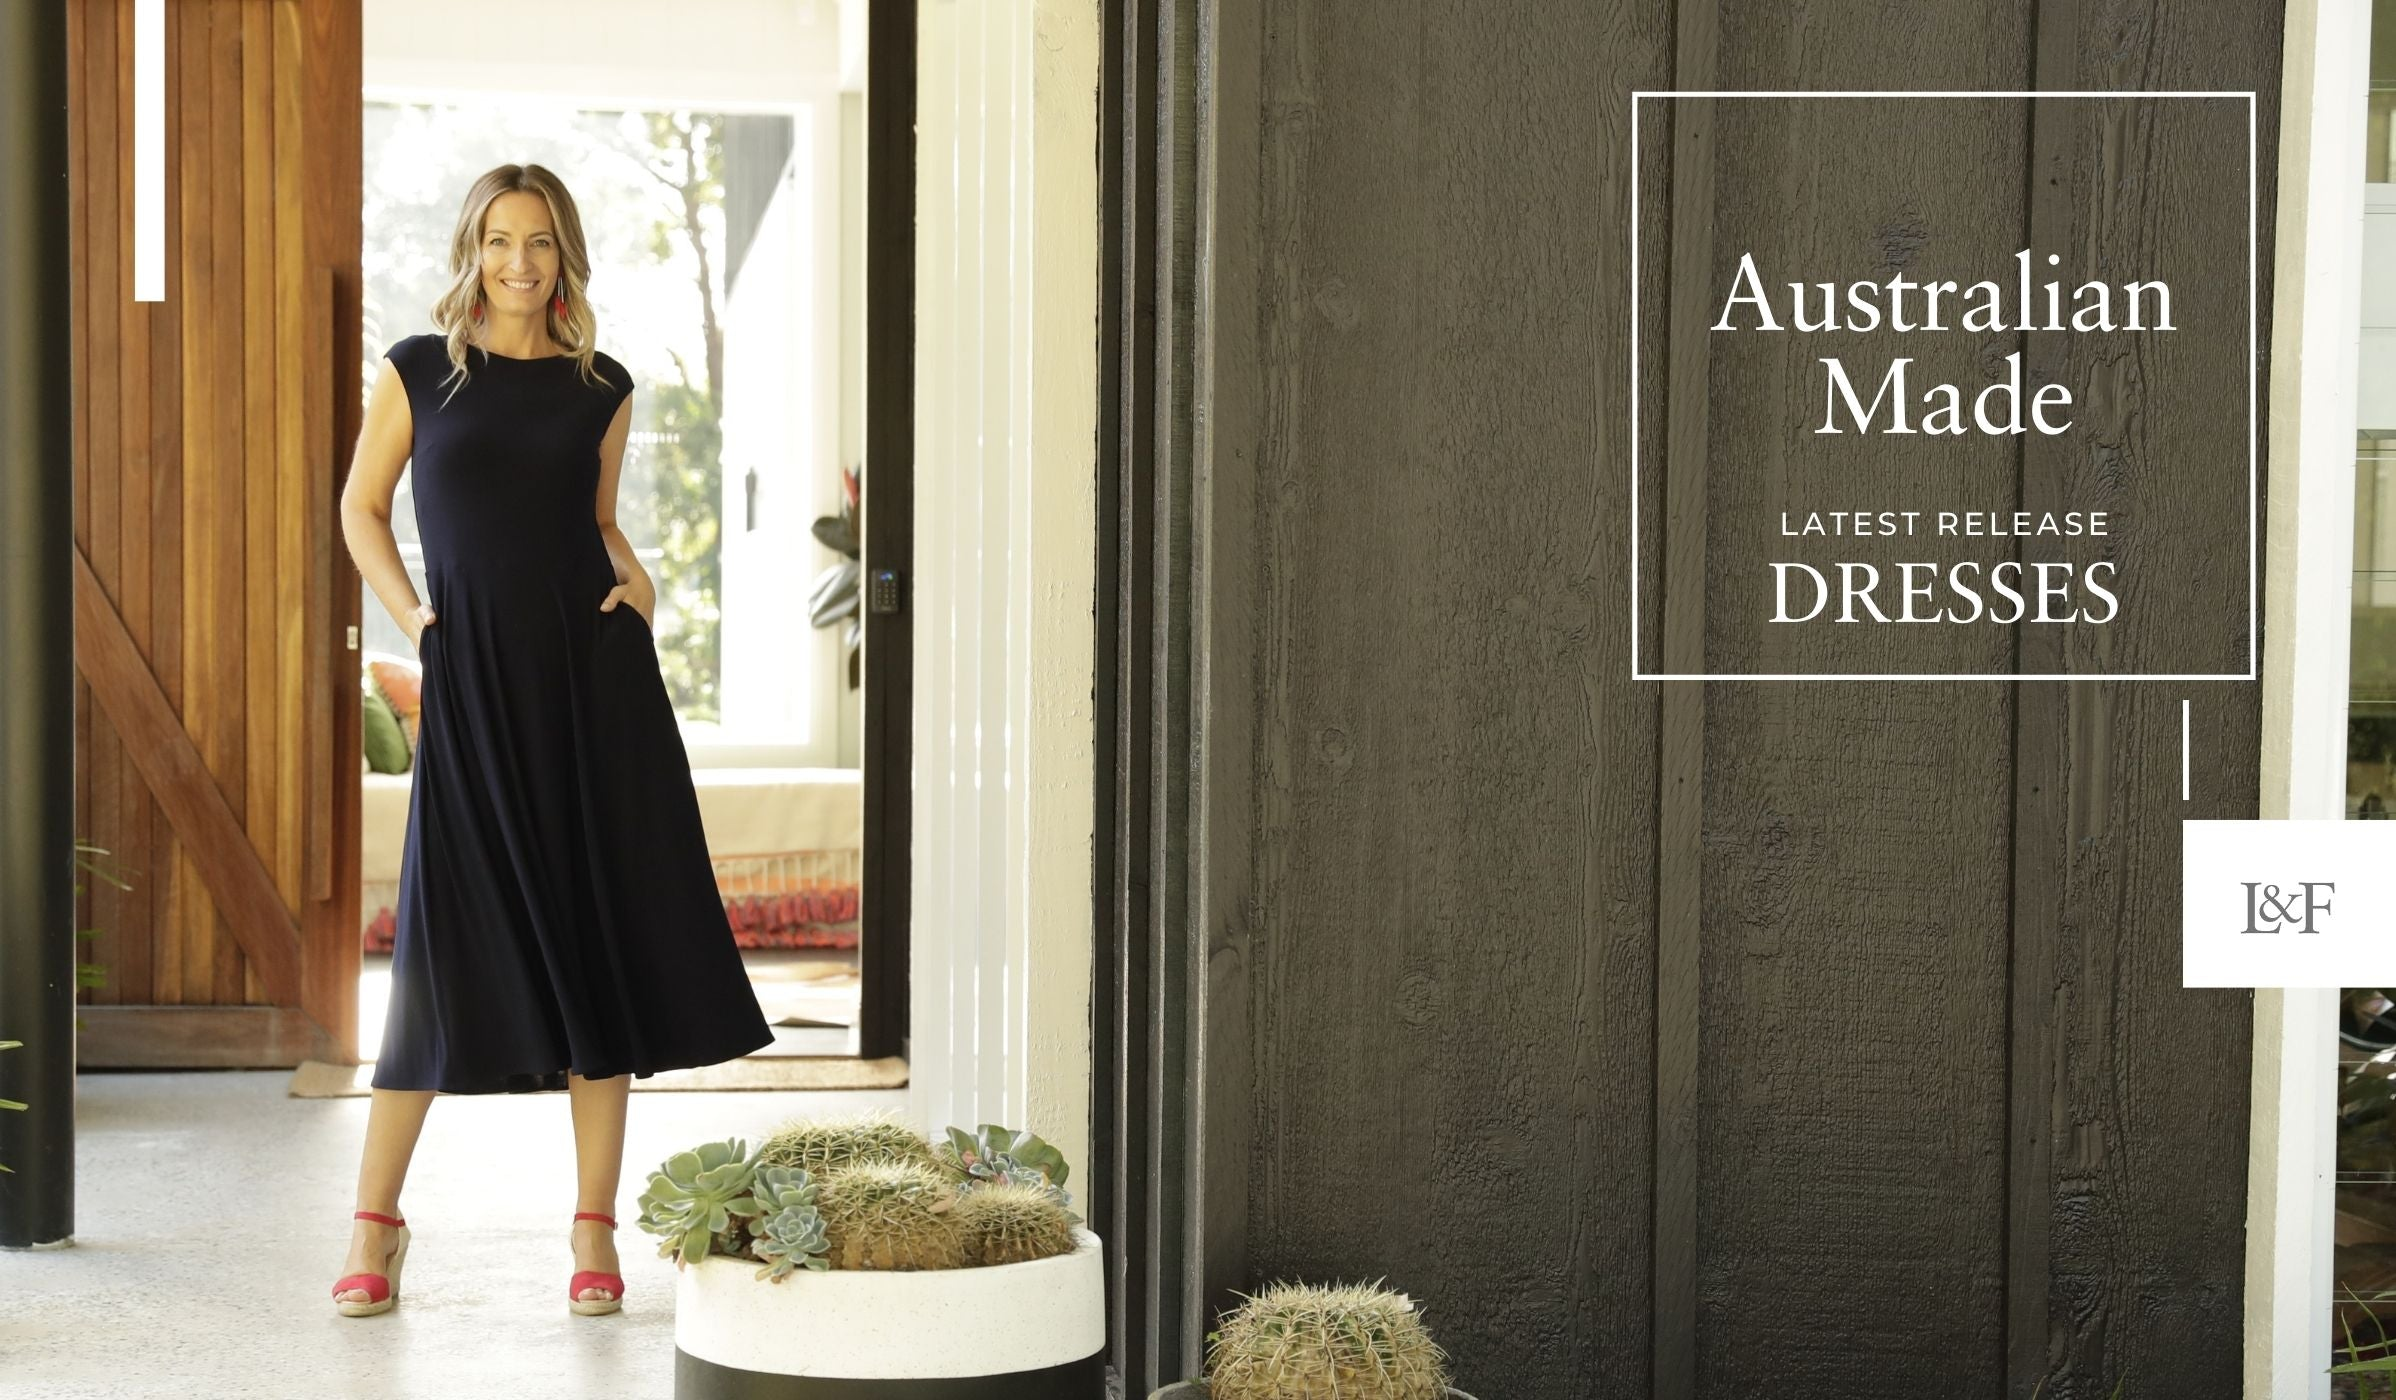 Australian Made Dresses latest releases with Emma wearing a size 10 black dress